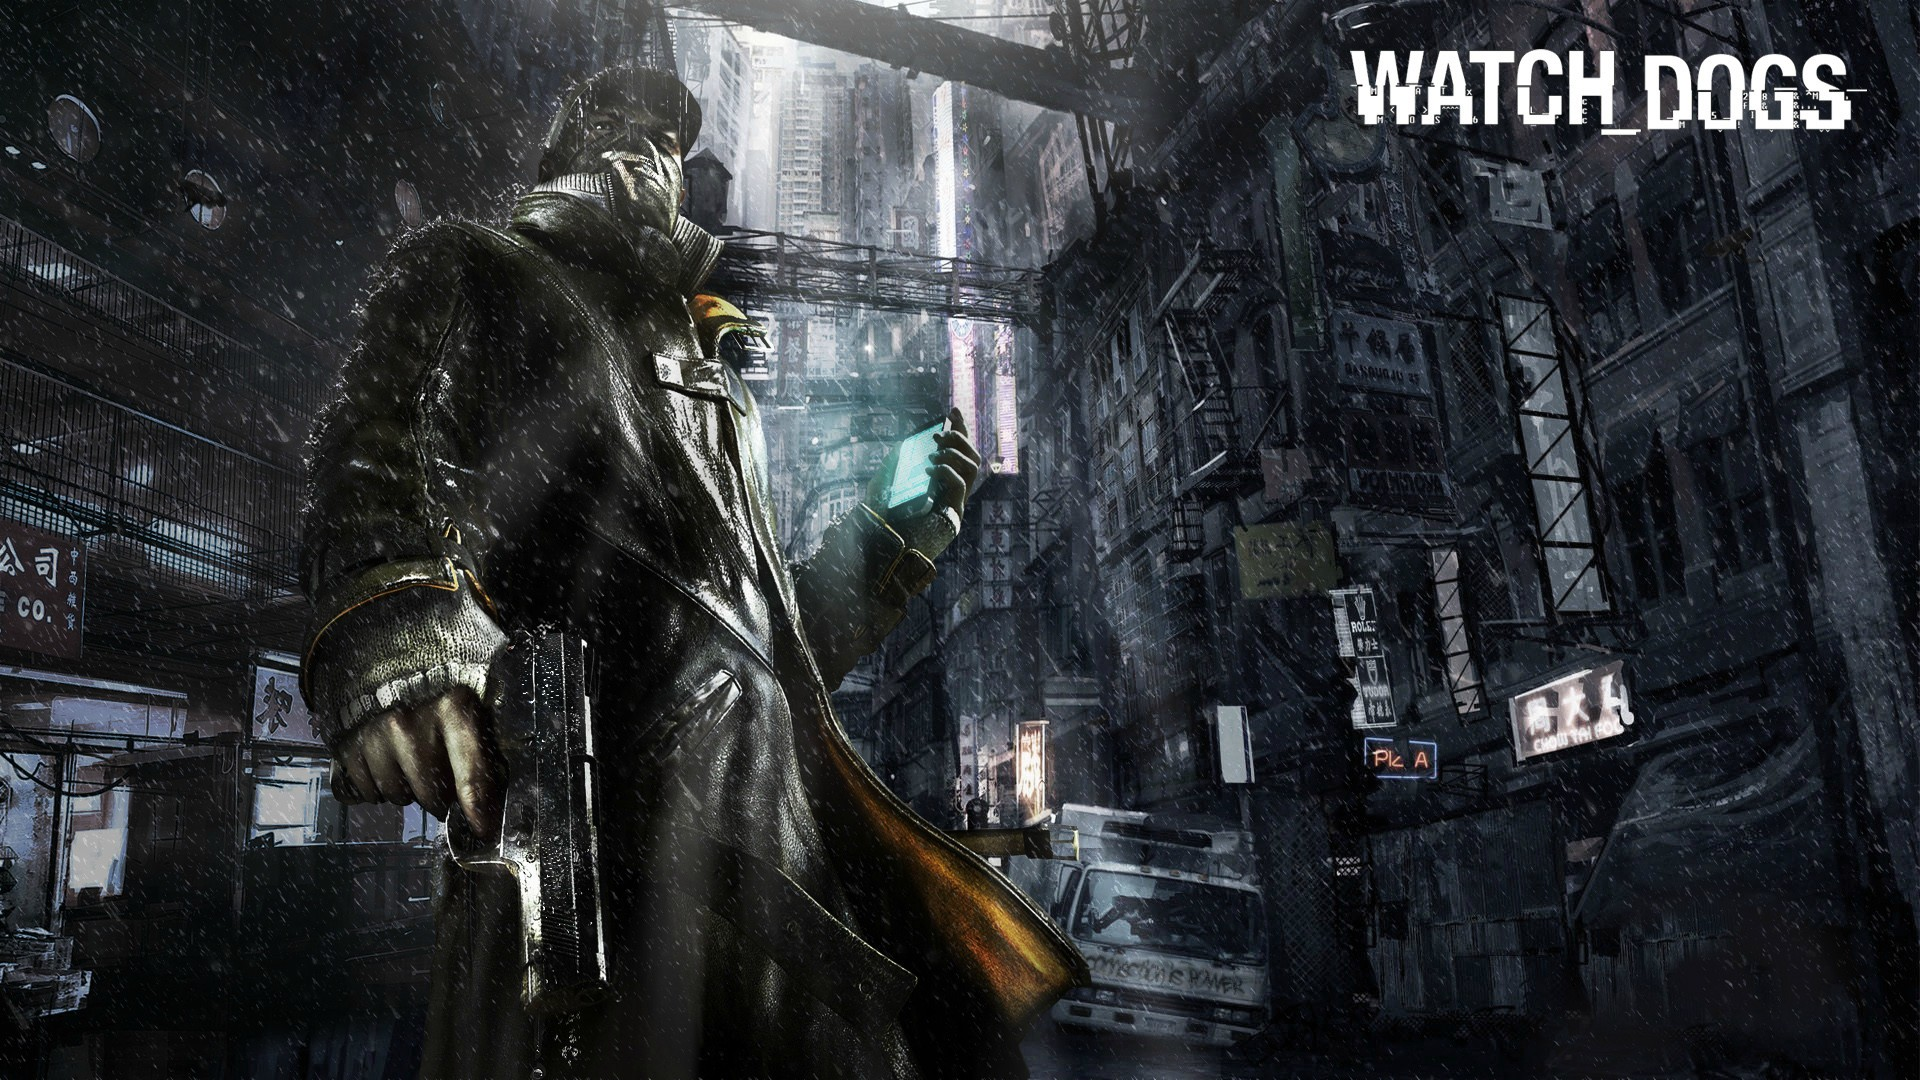 Latest UK Gaming Charts – Watch Dogs Back on Top